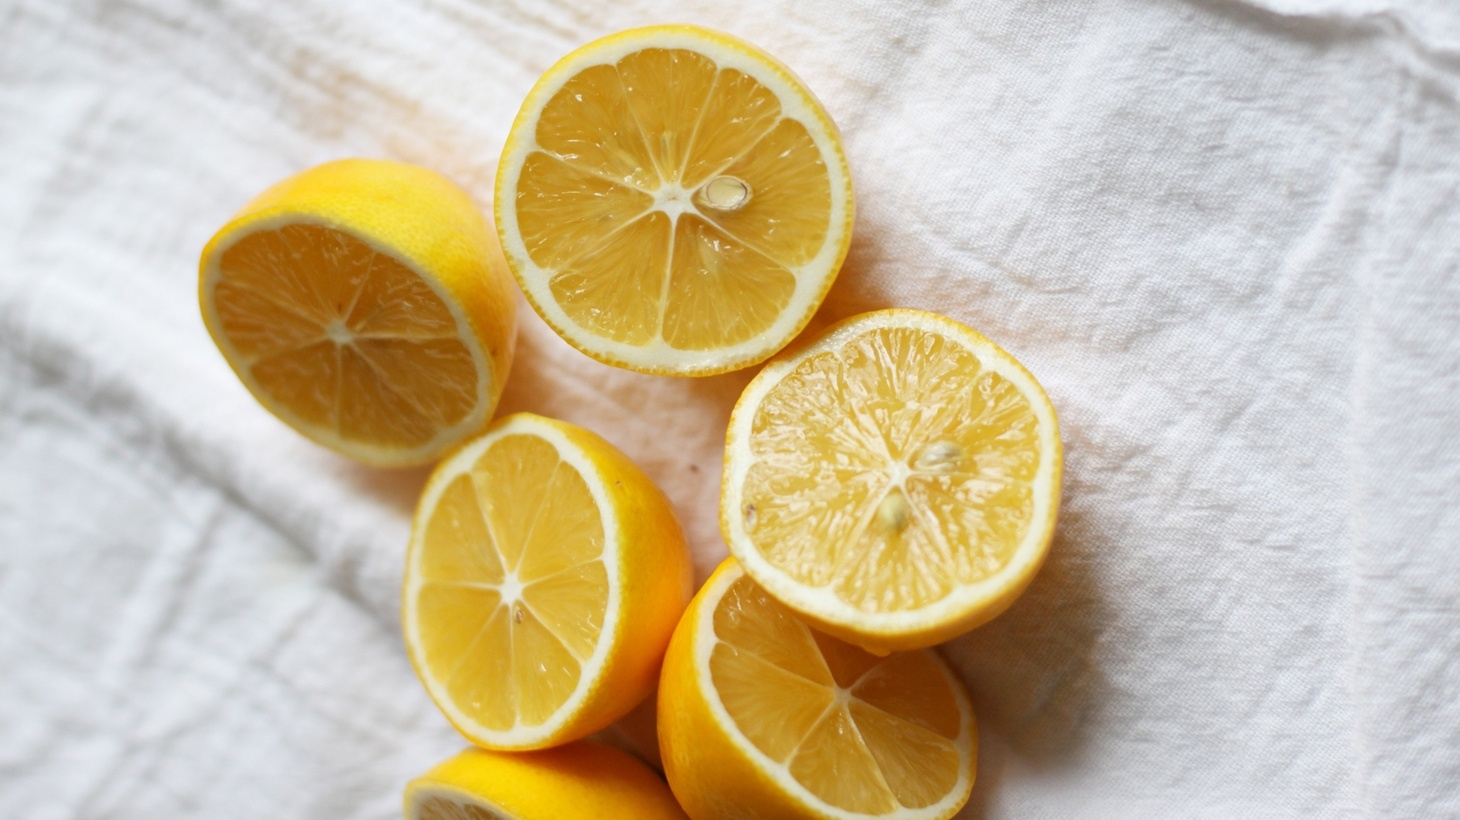 The Meyer lemon is a hybrid citrus fruit native to China. It is a cross between a citron and a mandarin/pomelo hybrid distinct from the common or bitter oranges.